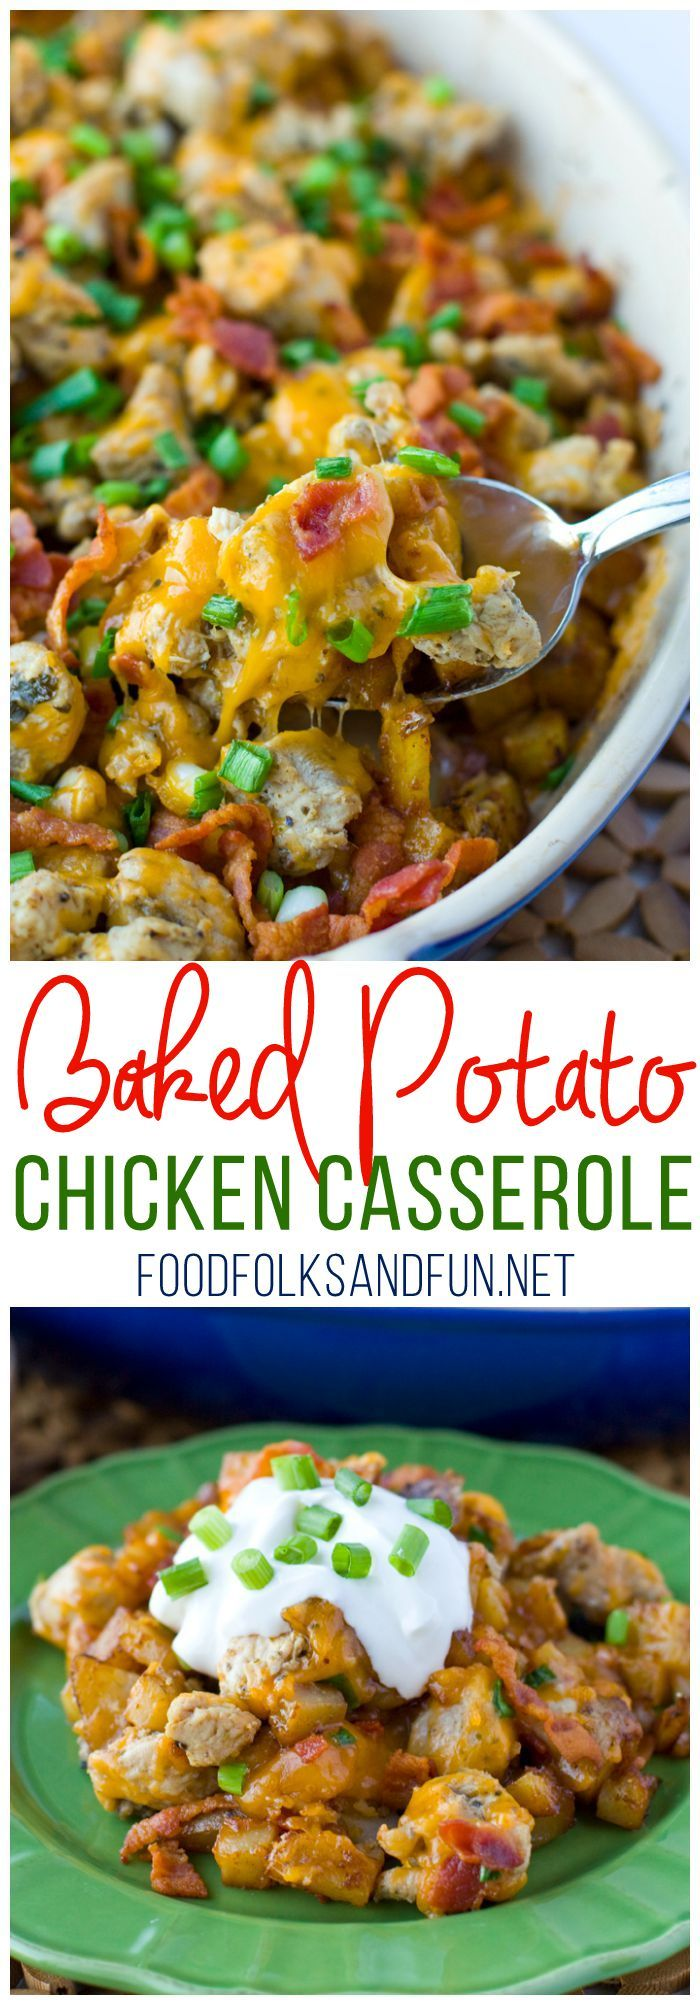 This Loaded Baked Potato Chicken Casserole Recipe is perfect for weeknight family dinners. It's an instant family-favorite and some serious comfort food! #ChooseSmart #Ad